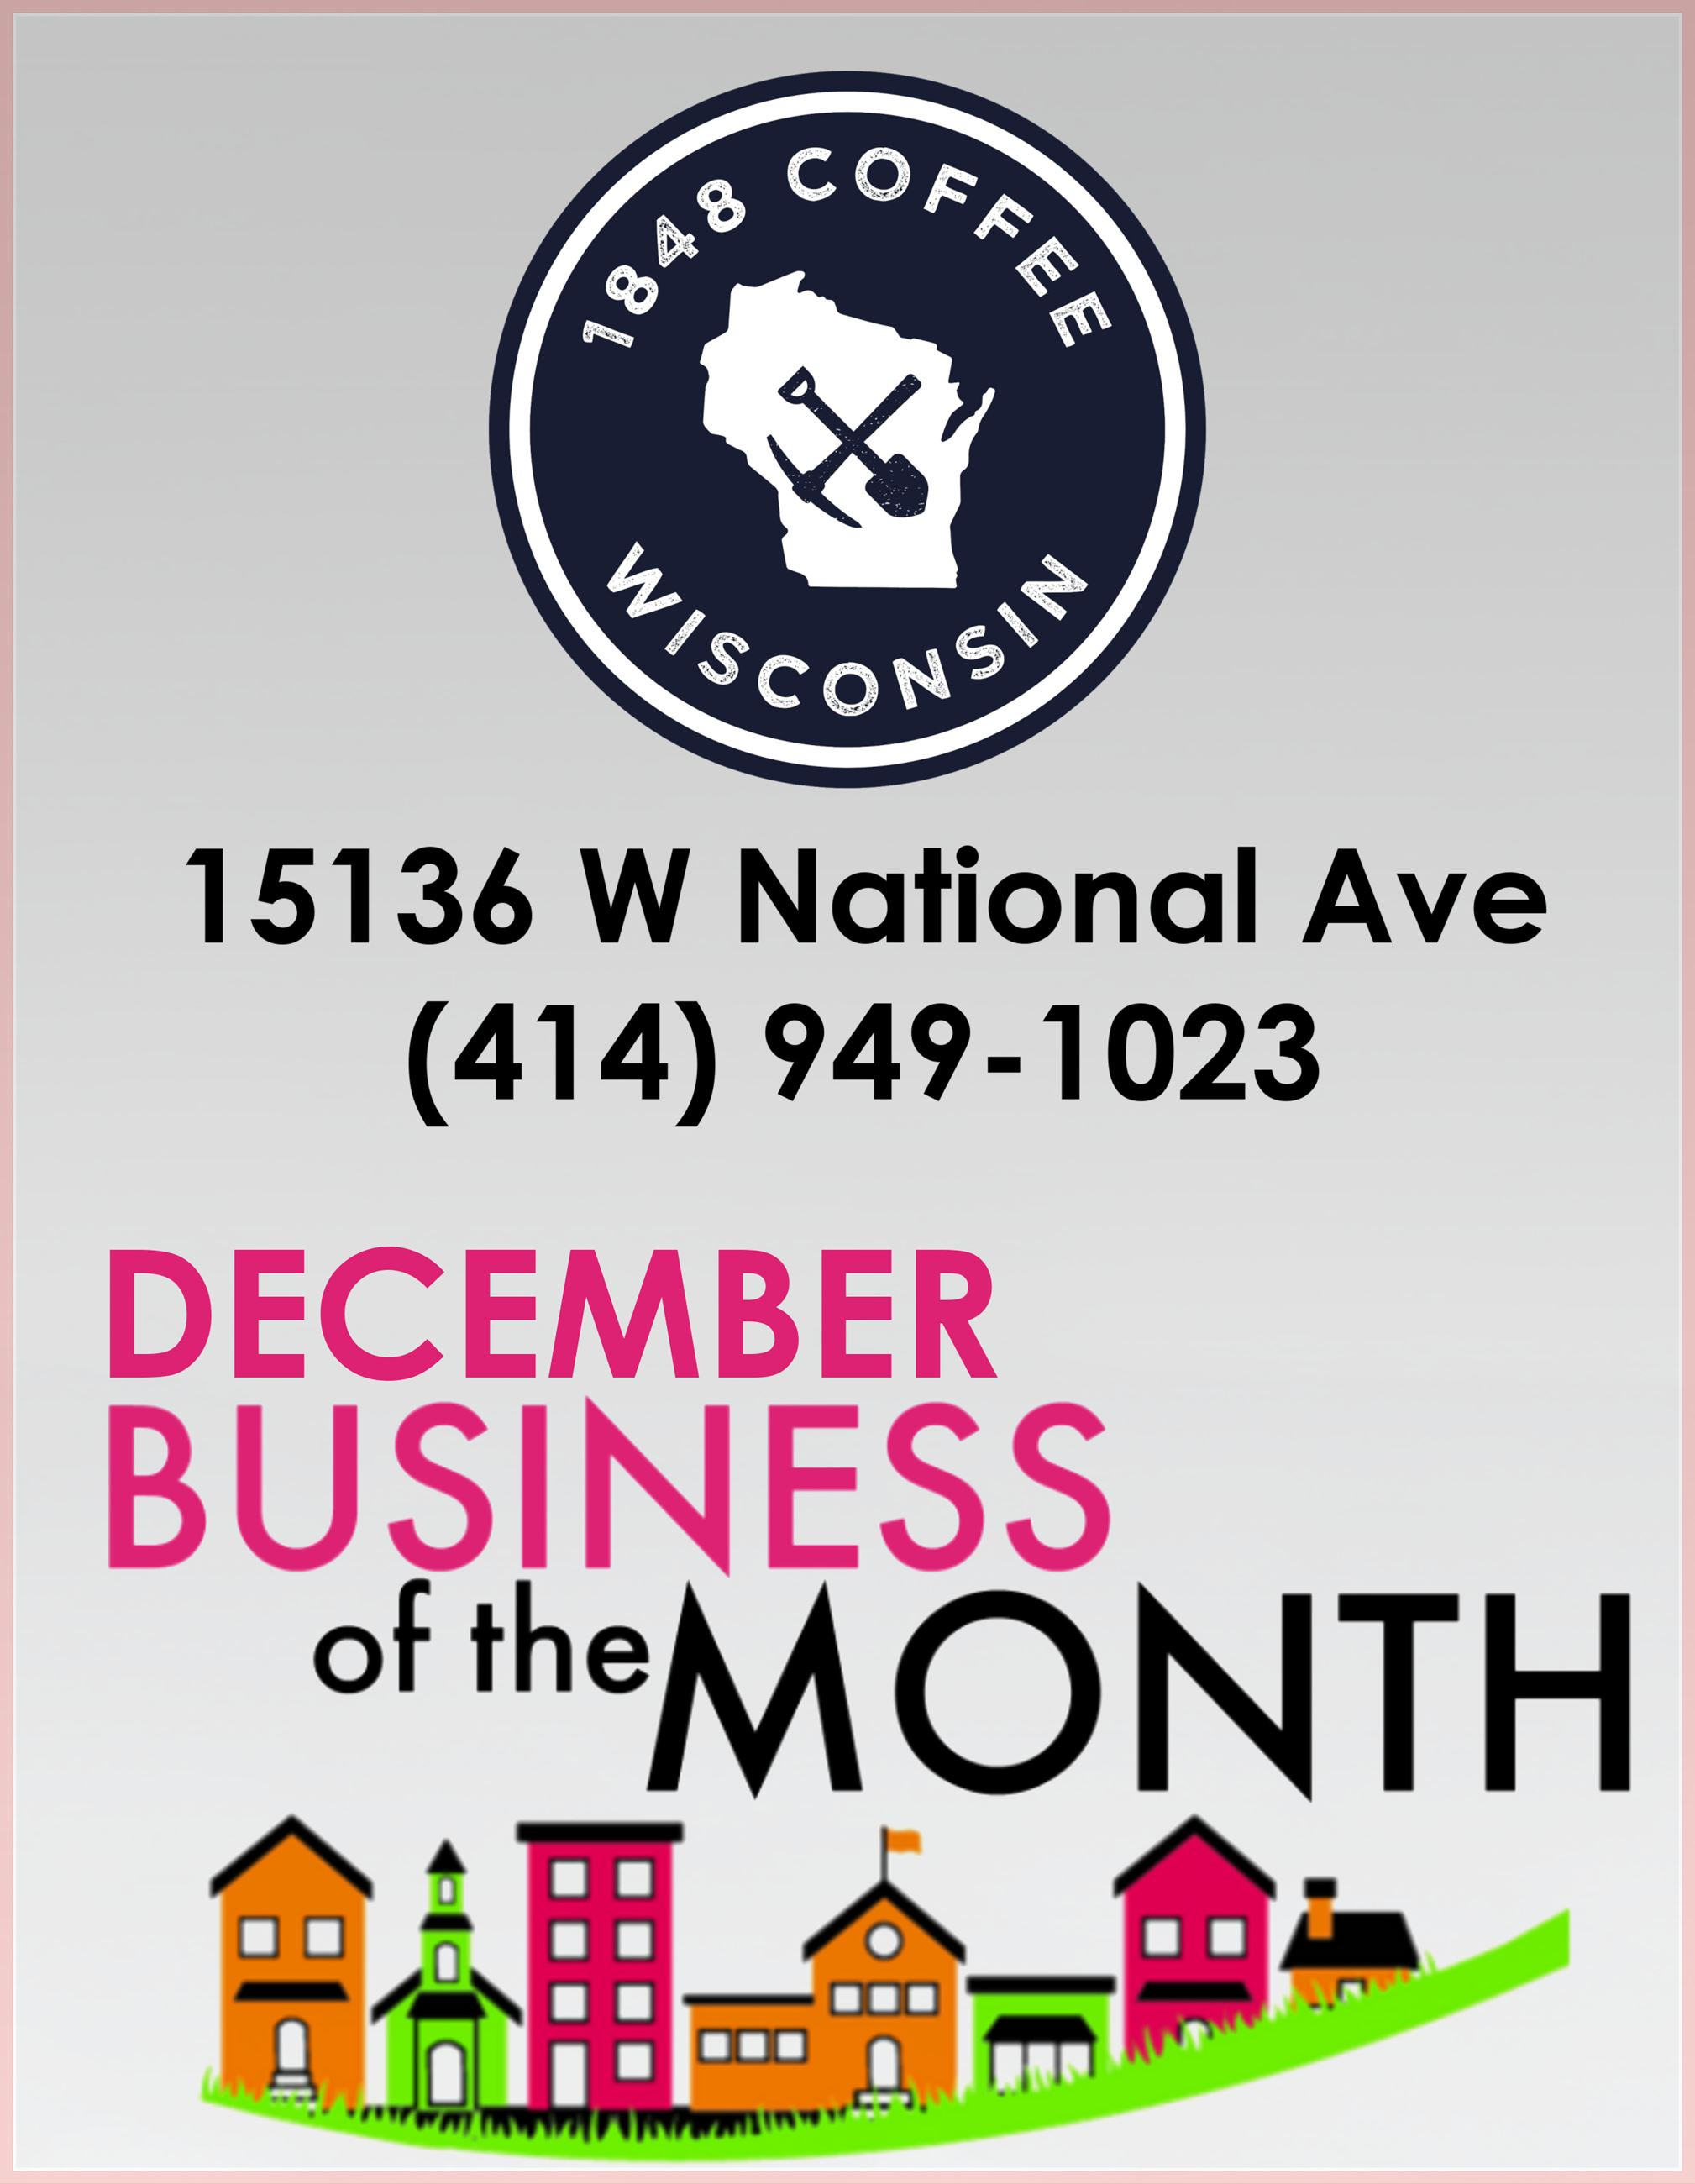 Business of the Month - 1848 Coffee